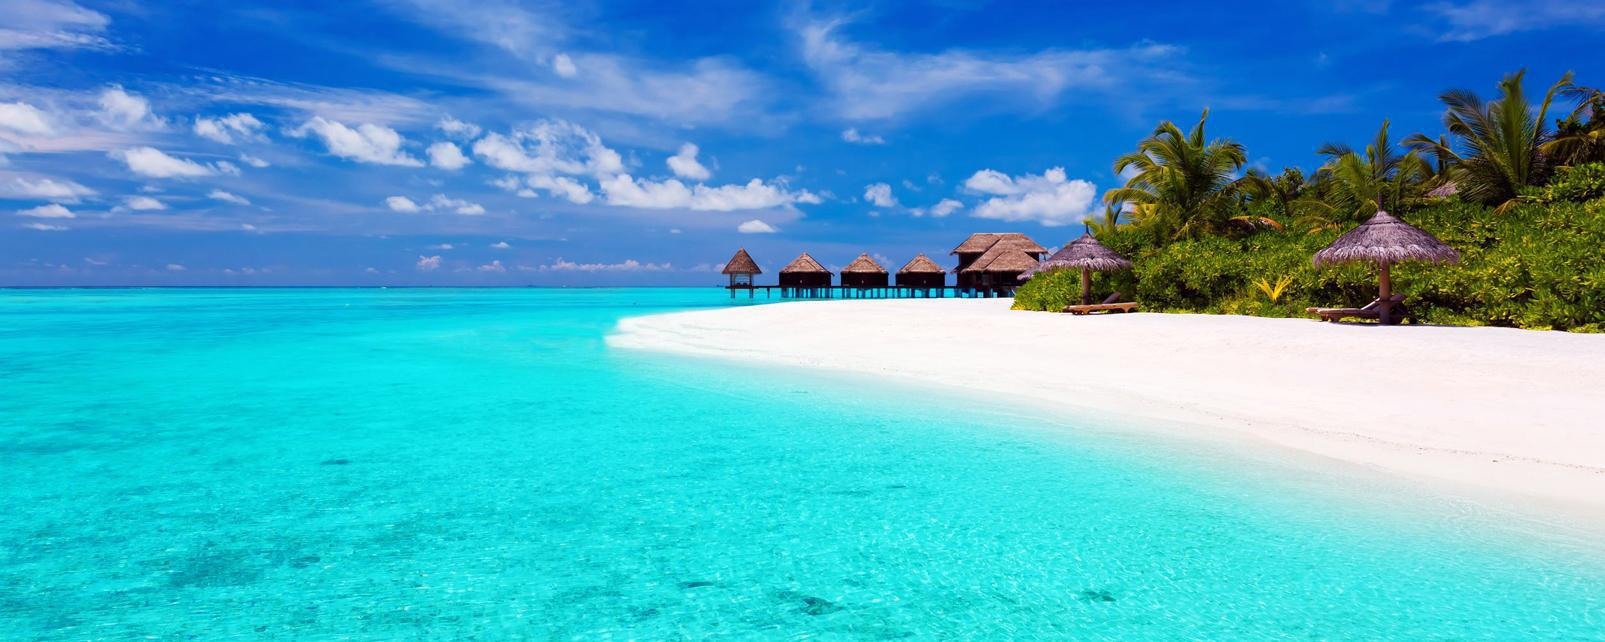 Travel to The Maldives - Discover The Maldives with Easyvoyage